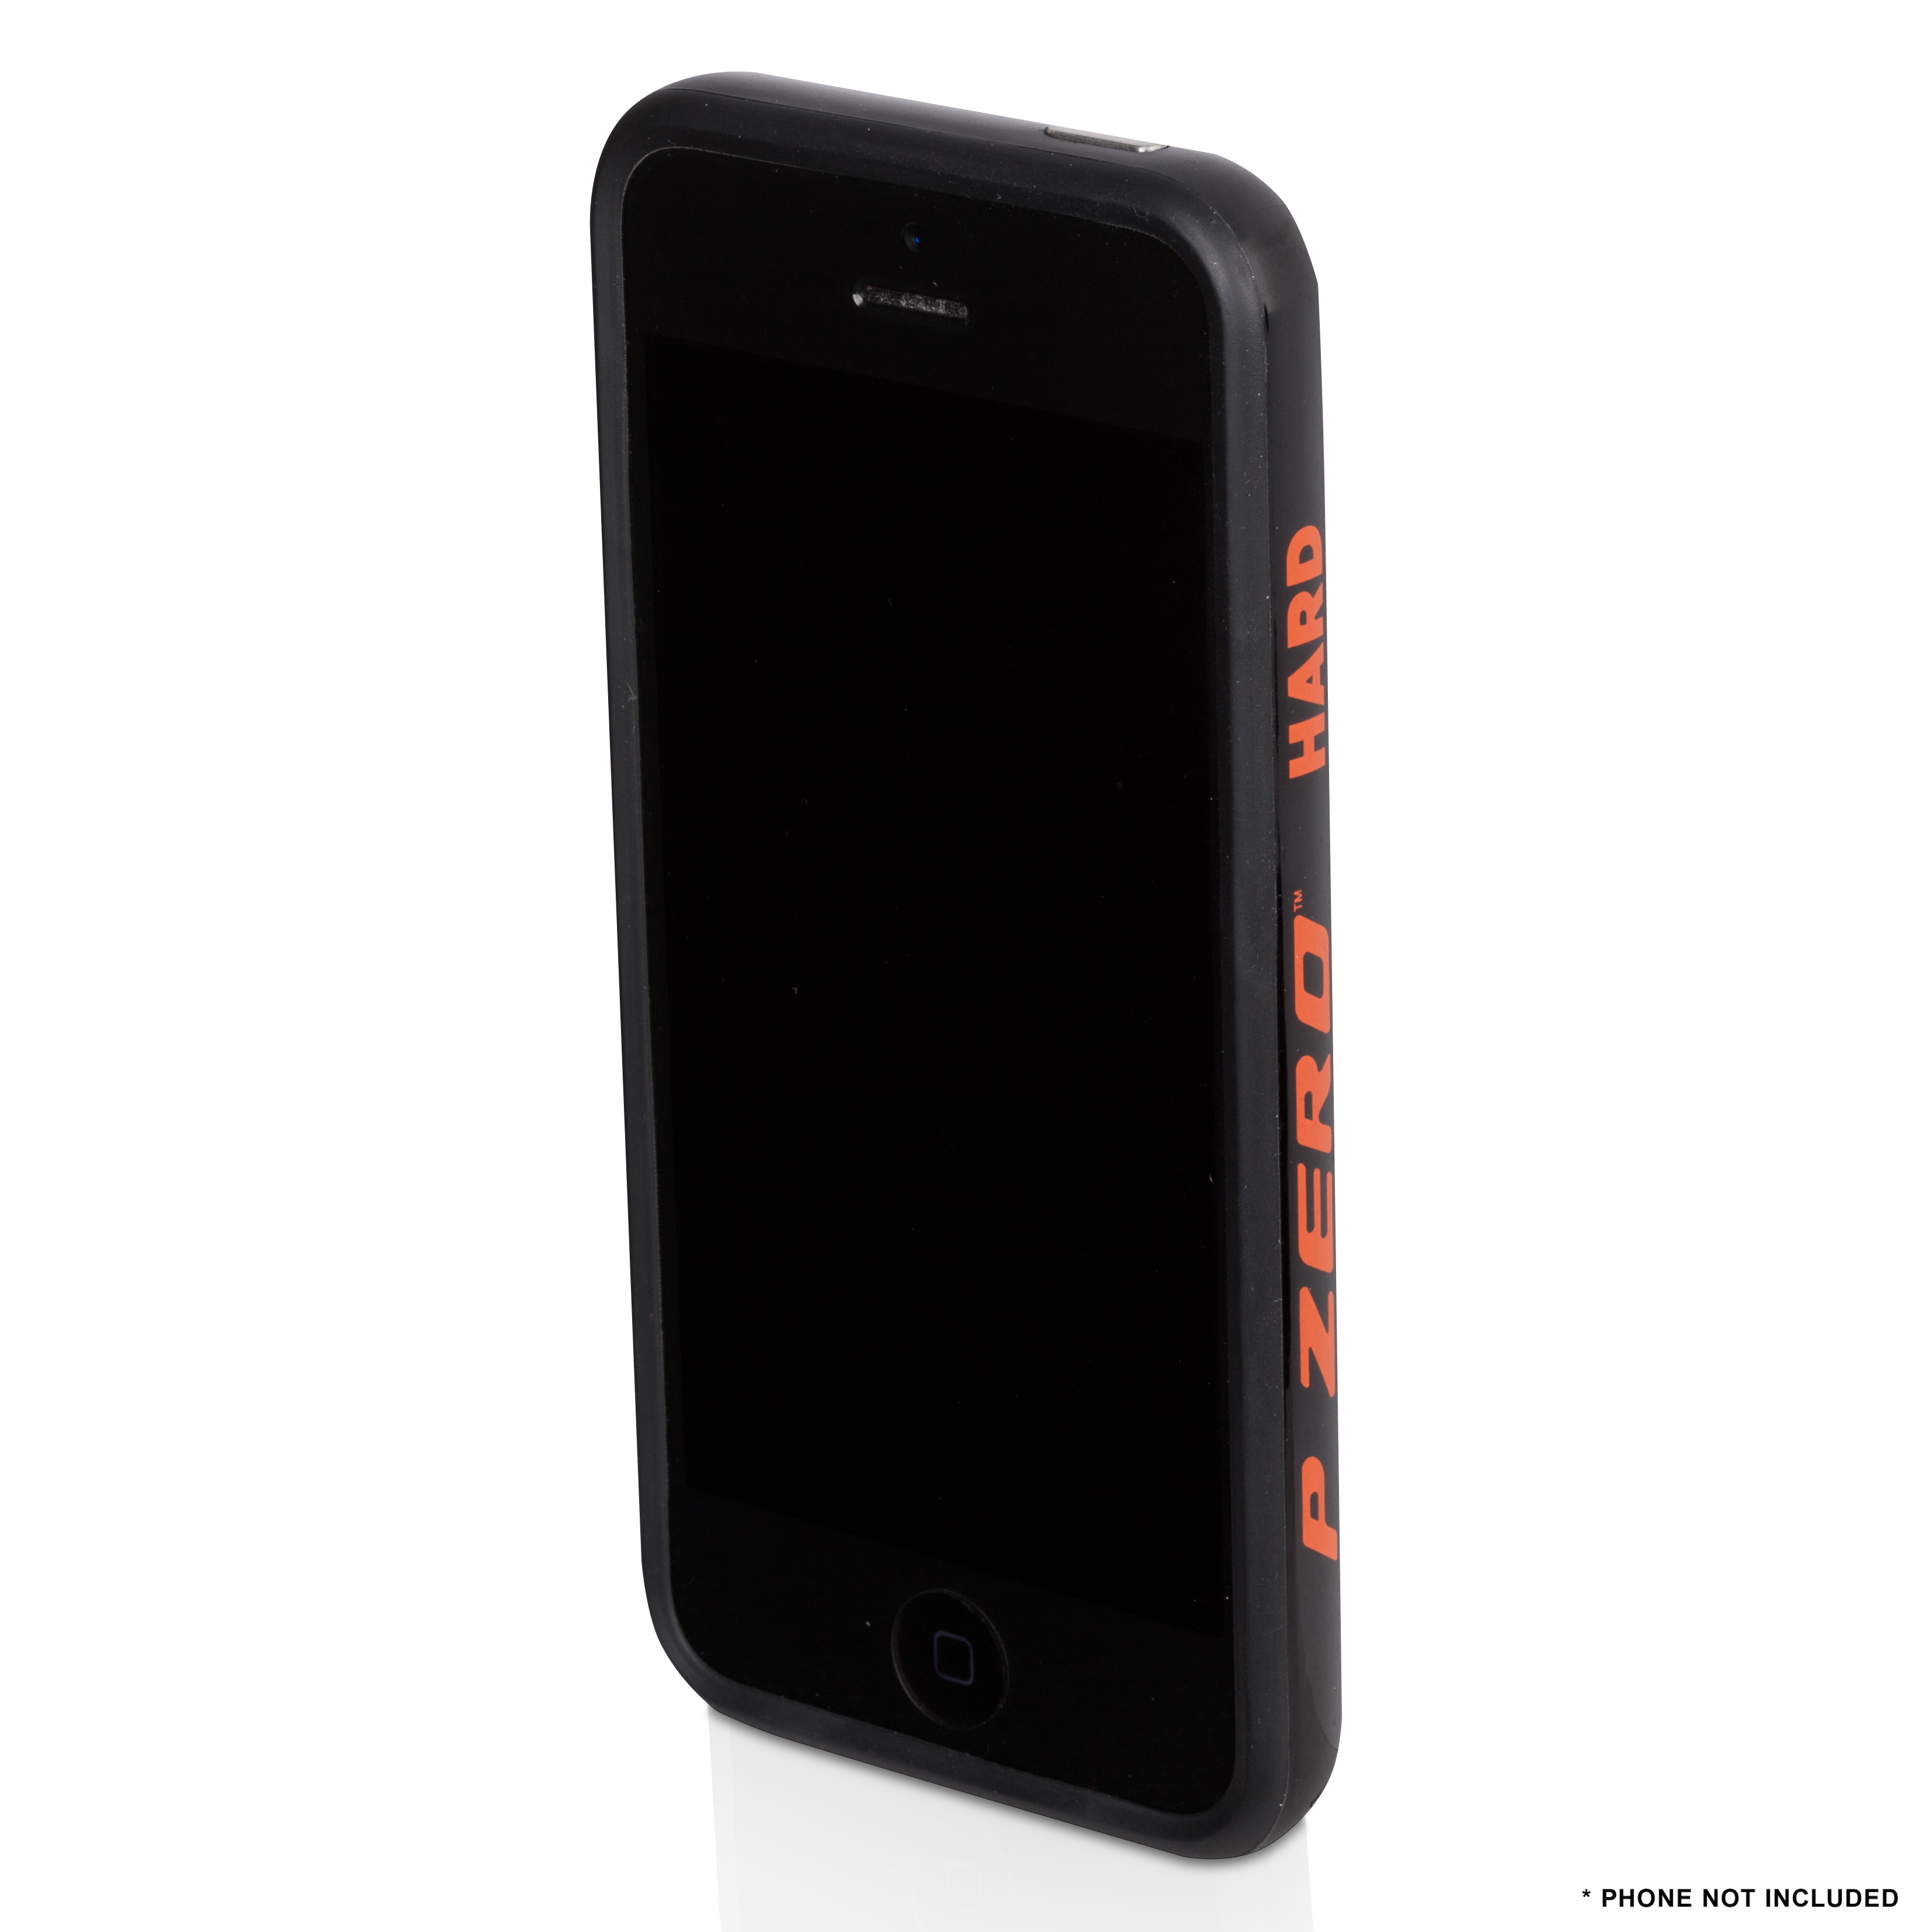 Pirelli Pzero Hard iPhone 5 Bumper